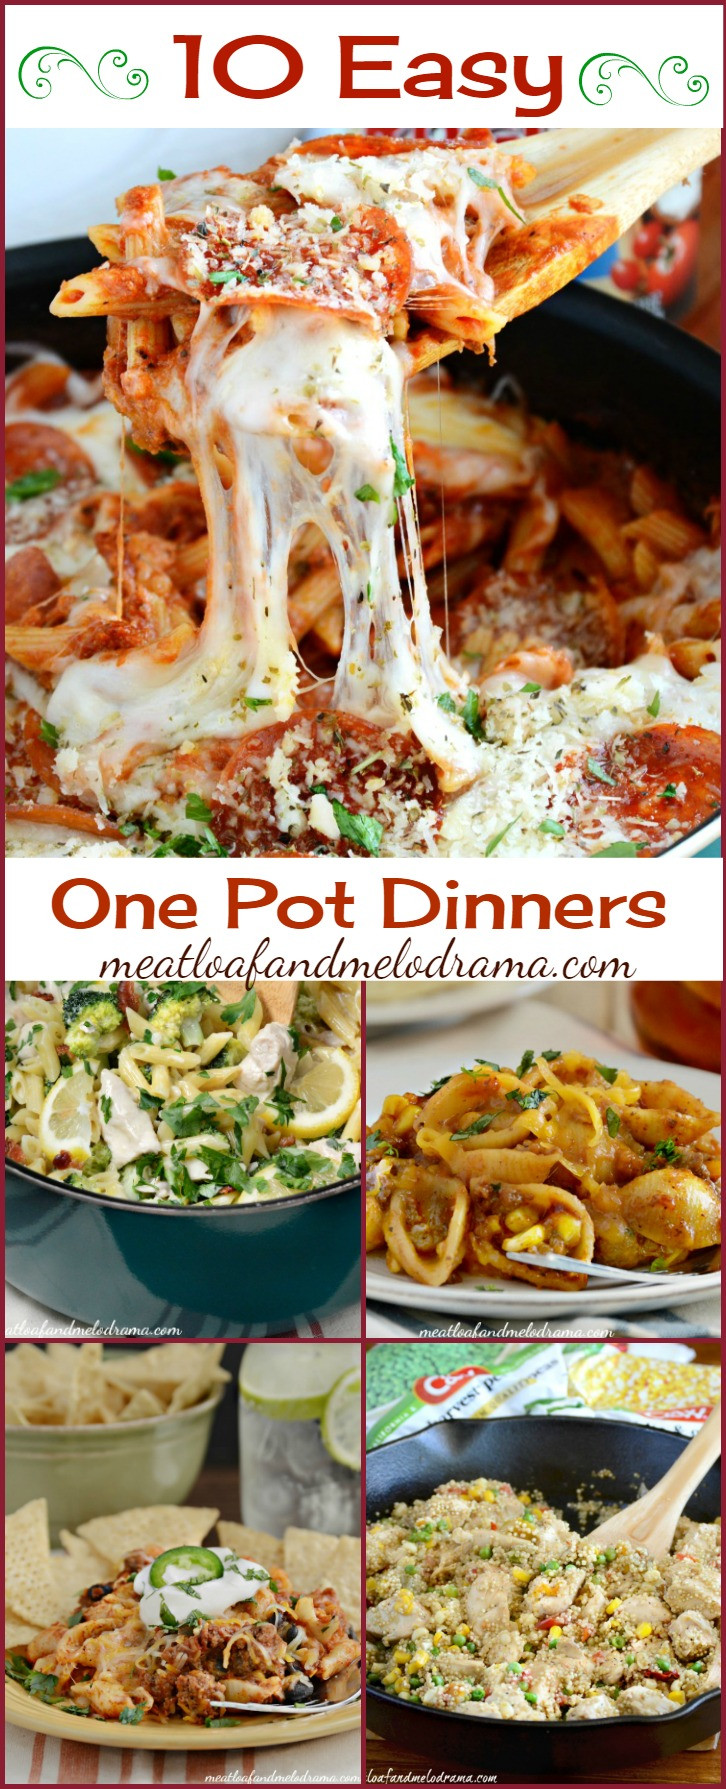 Easy One Pan Dinners  10 Quick and Easy e Pot Dinners Meatloaf and Melodrama